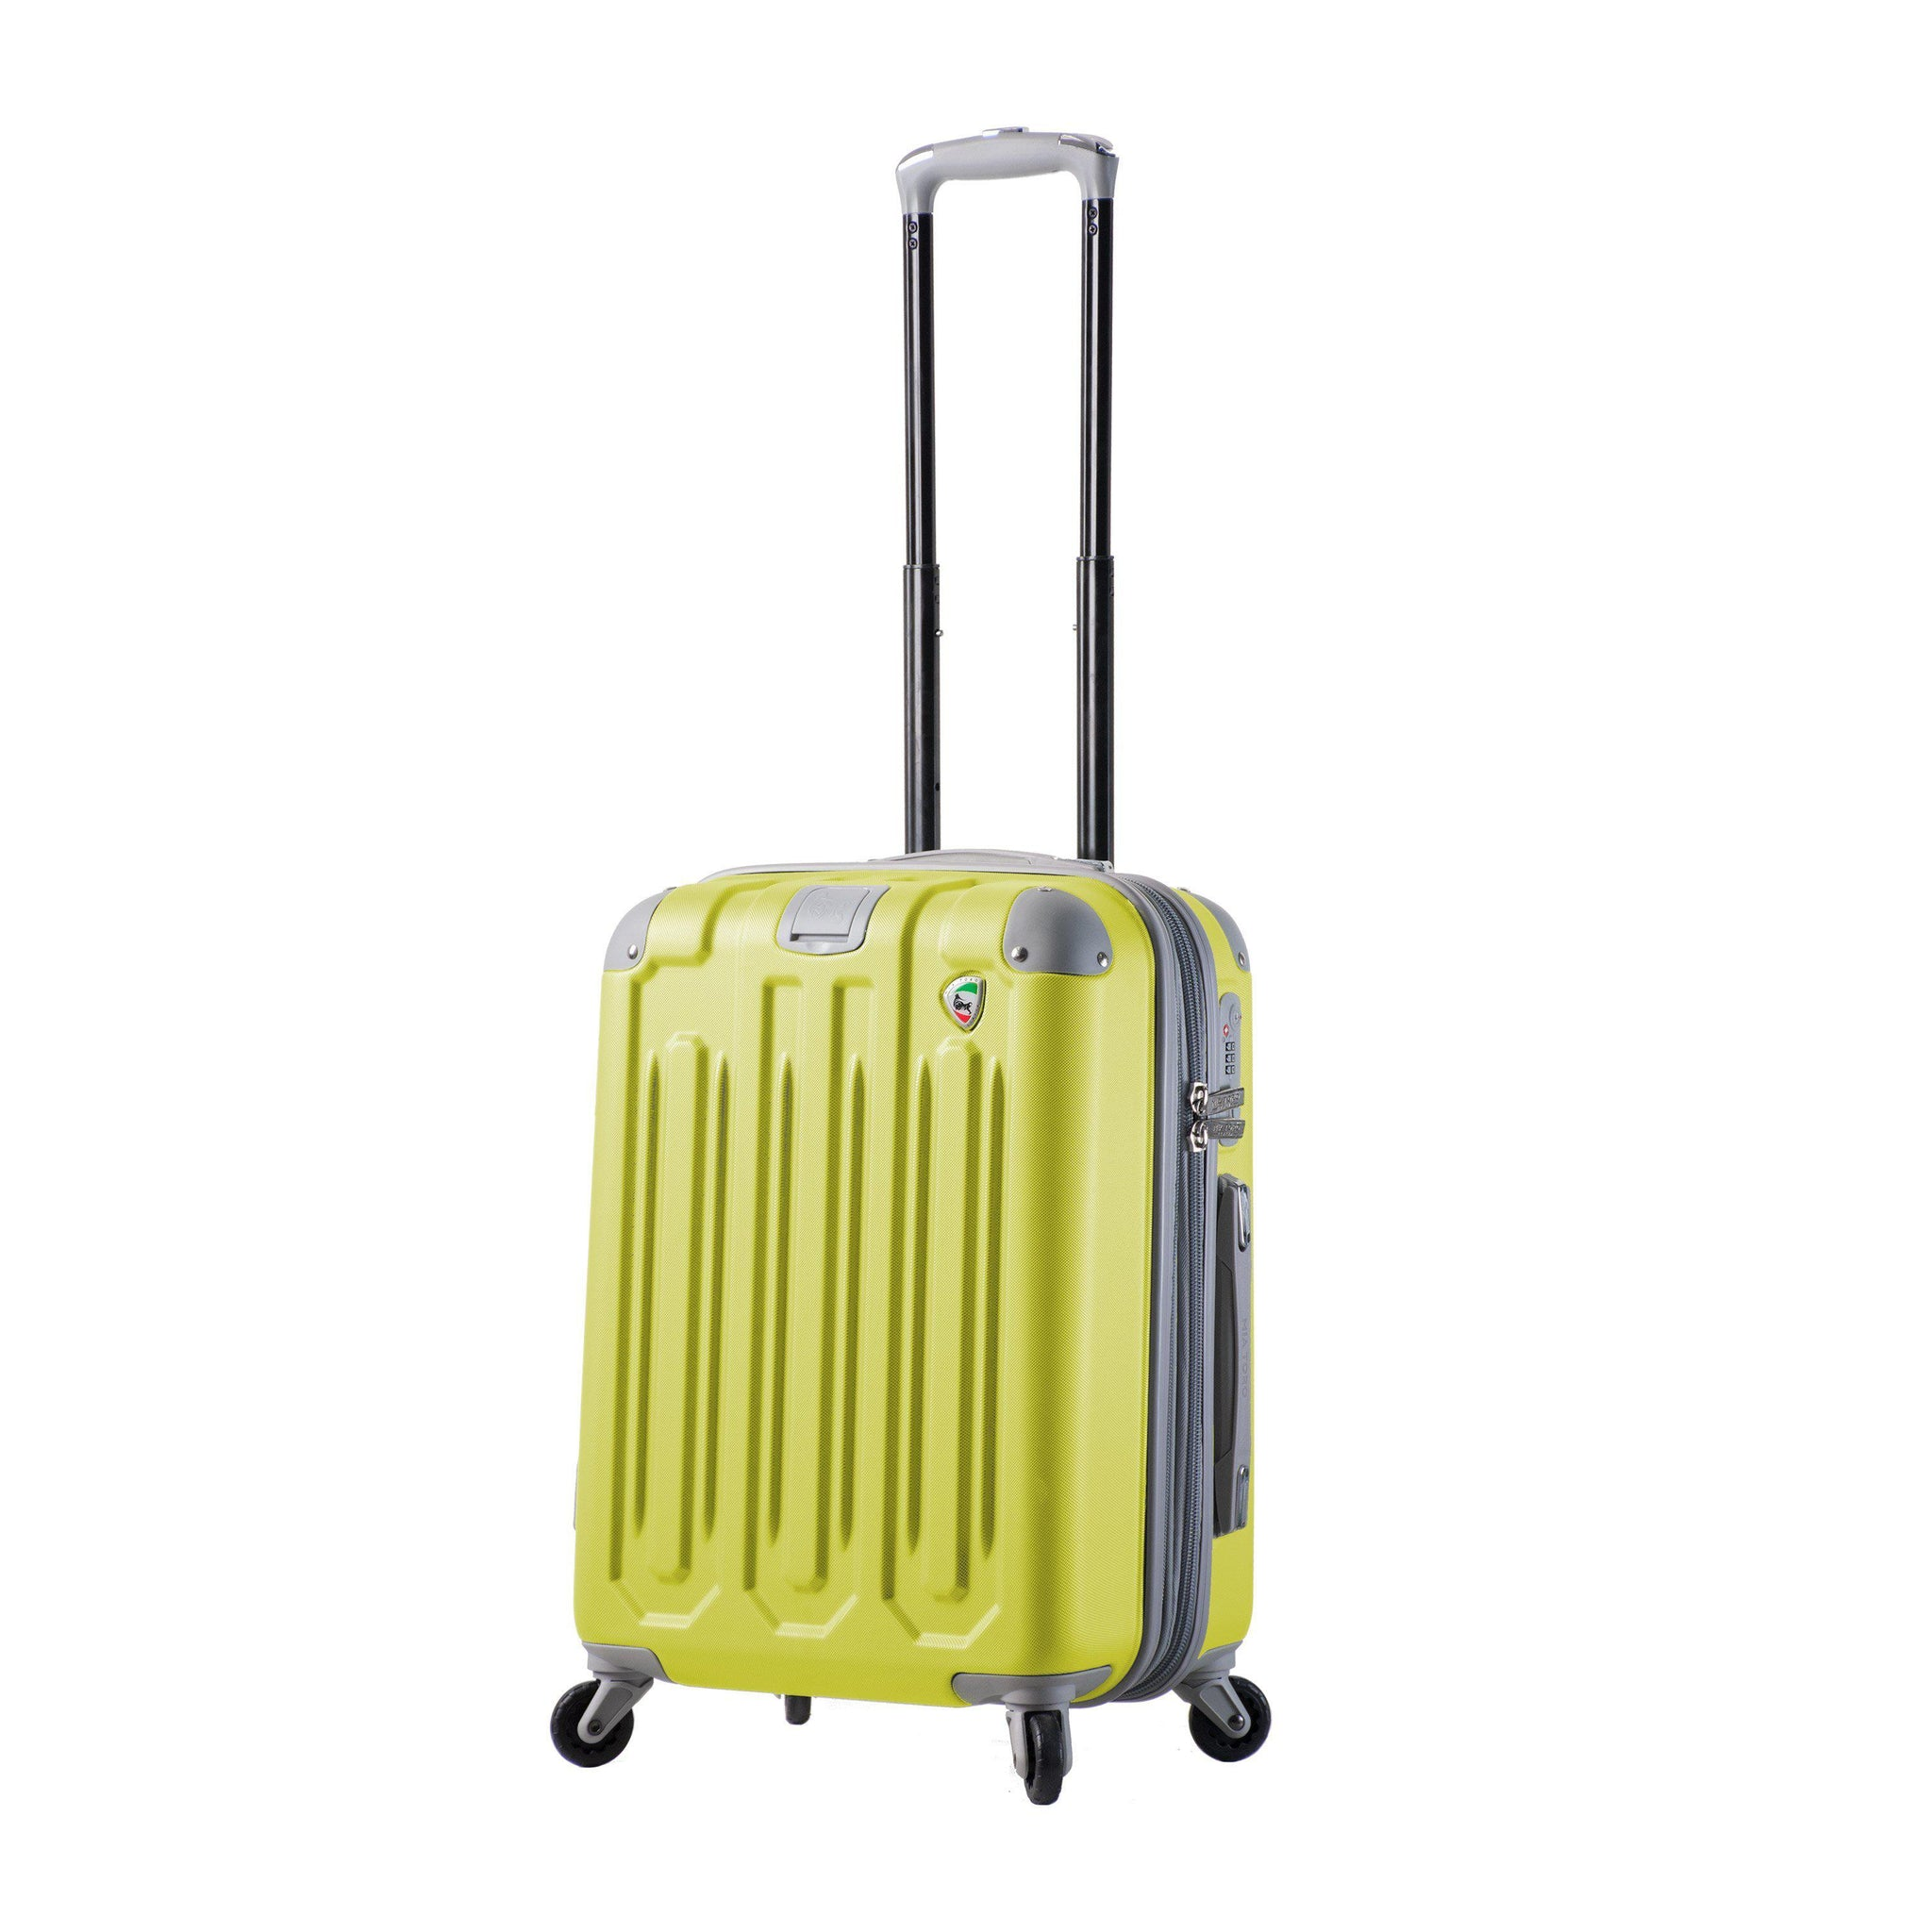 Gelato Hardside Spinner Carry-On Cute Luggage